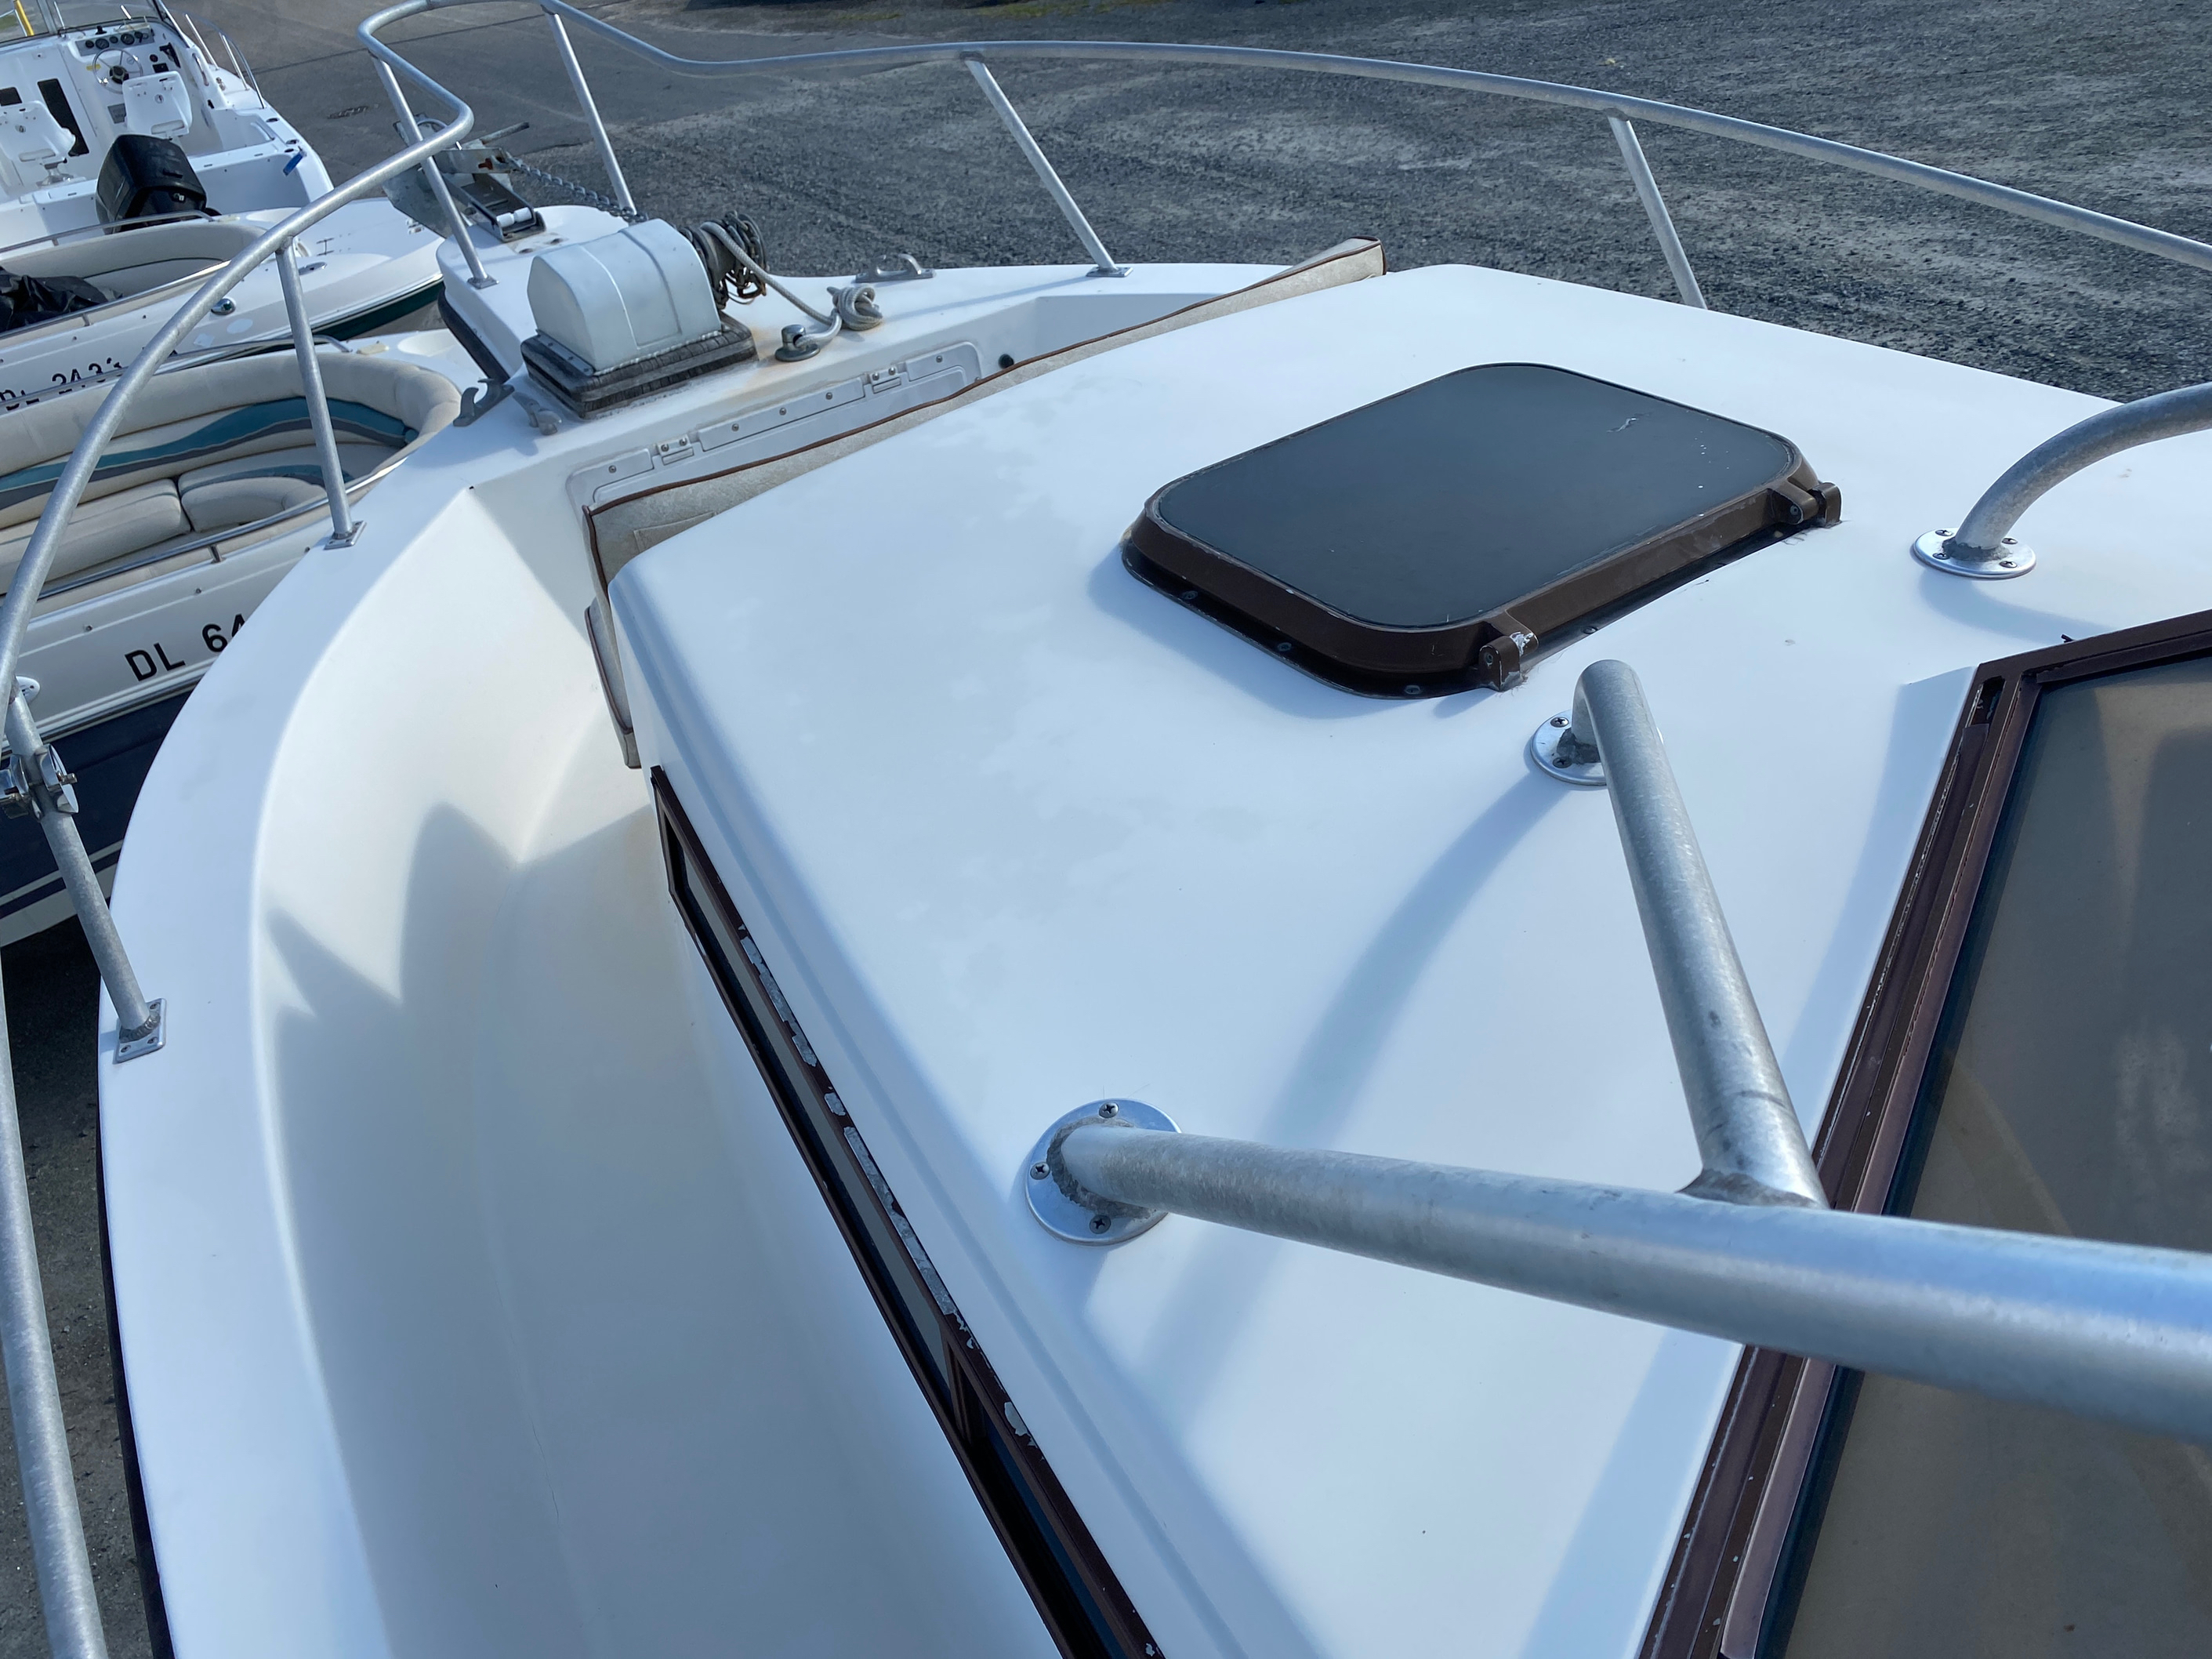 1998 Mako boat for sale, model of the boat is 260 Walkaround & Image # 6 of 15